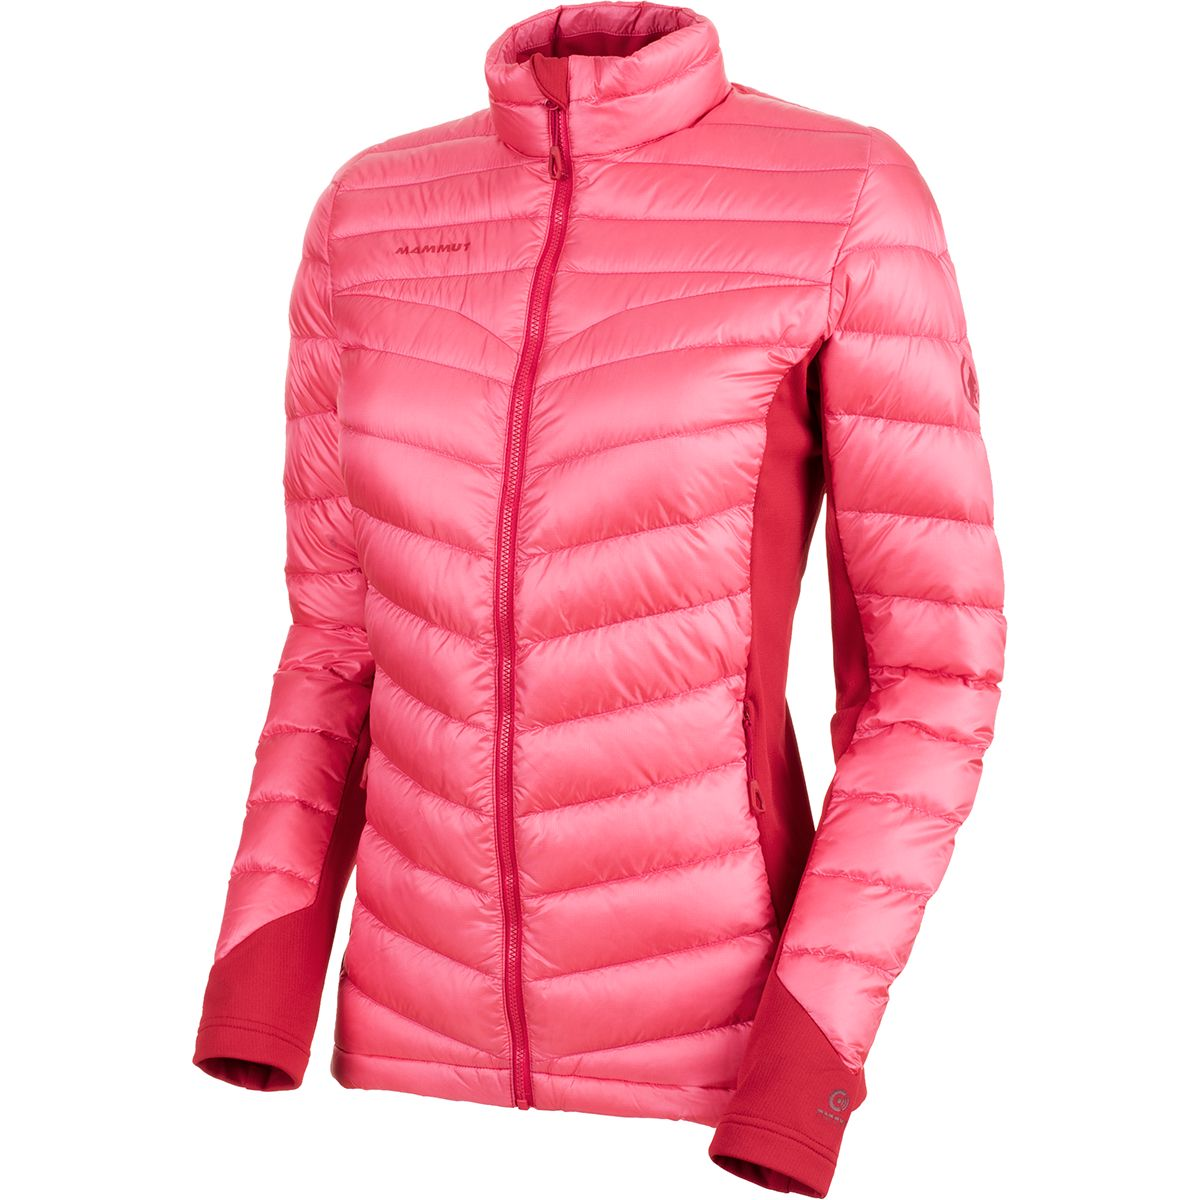 Mammut Damen Flexidown In Jacke (Größe S, Pink) | Isolationsjacken > Damen